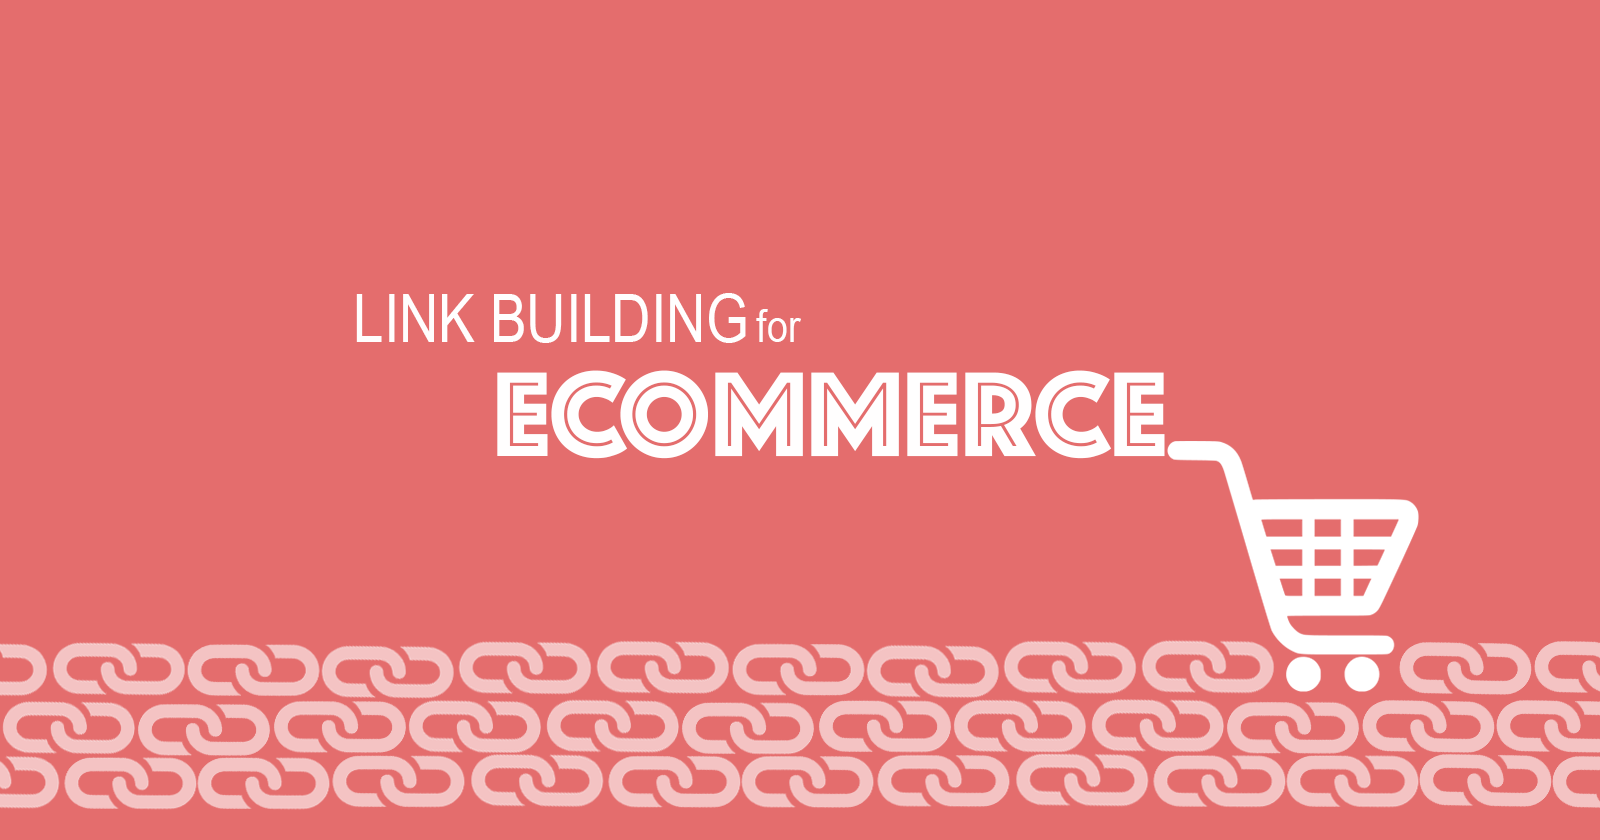 Effective E-commerce Link Building Strategies & Examples by @_kevinrowe